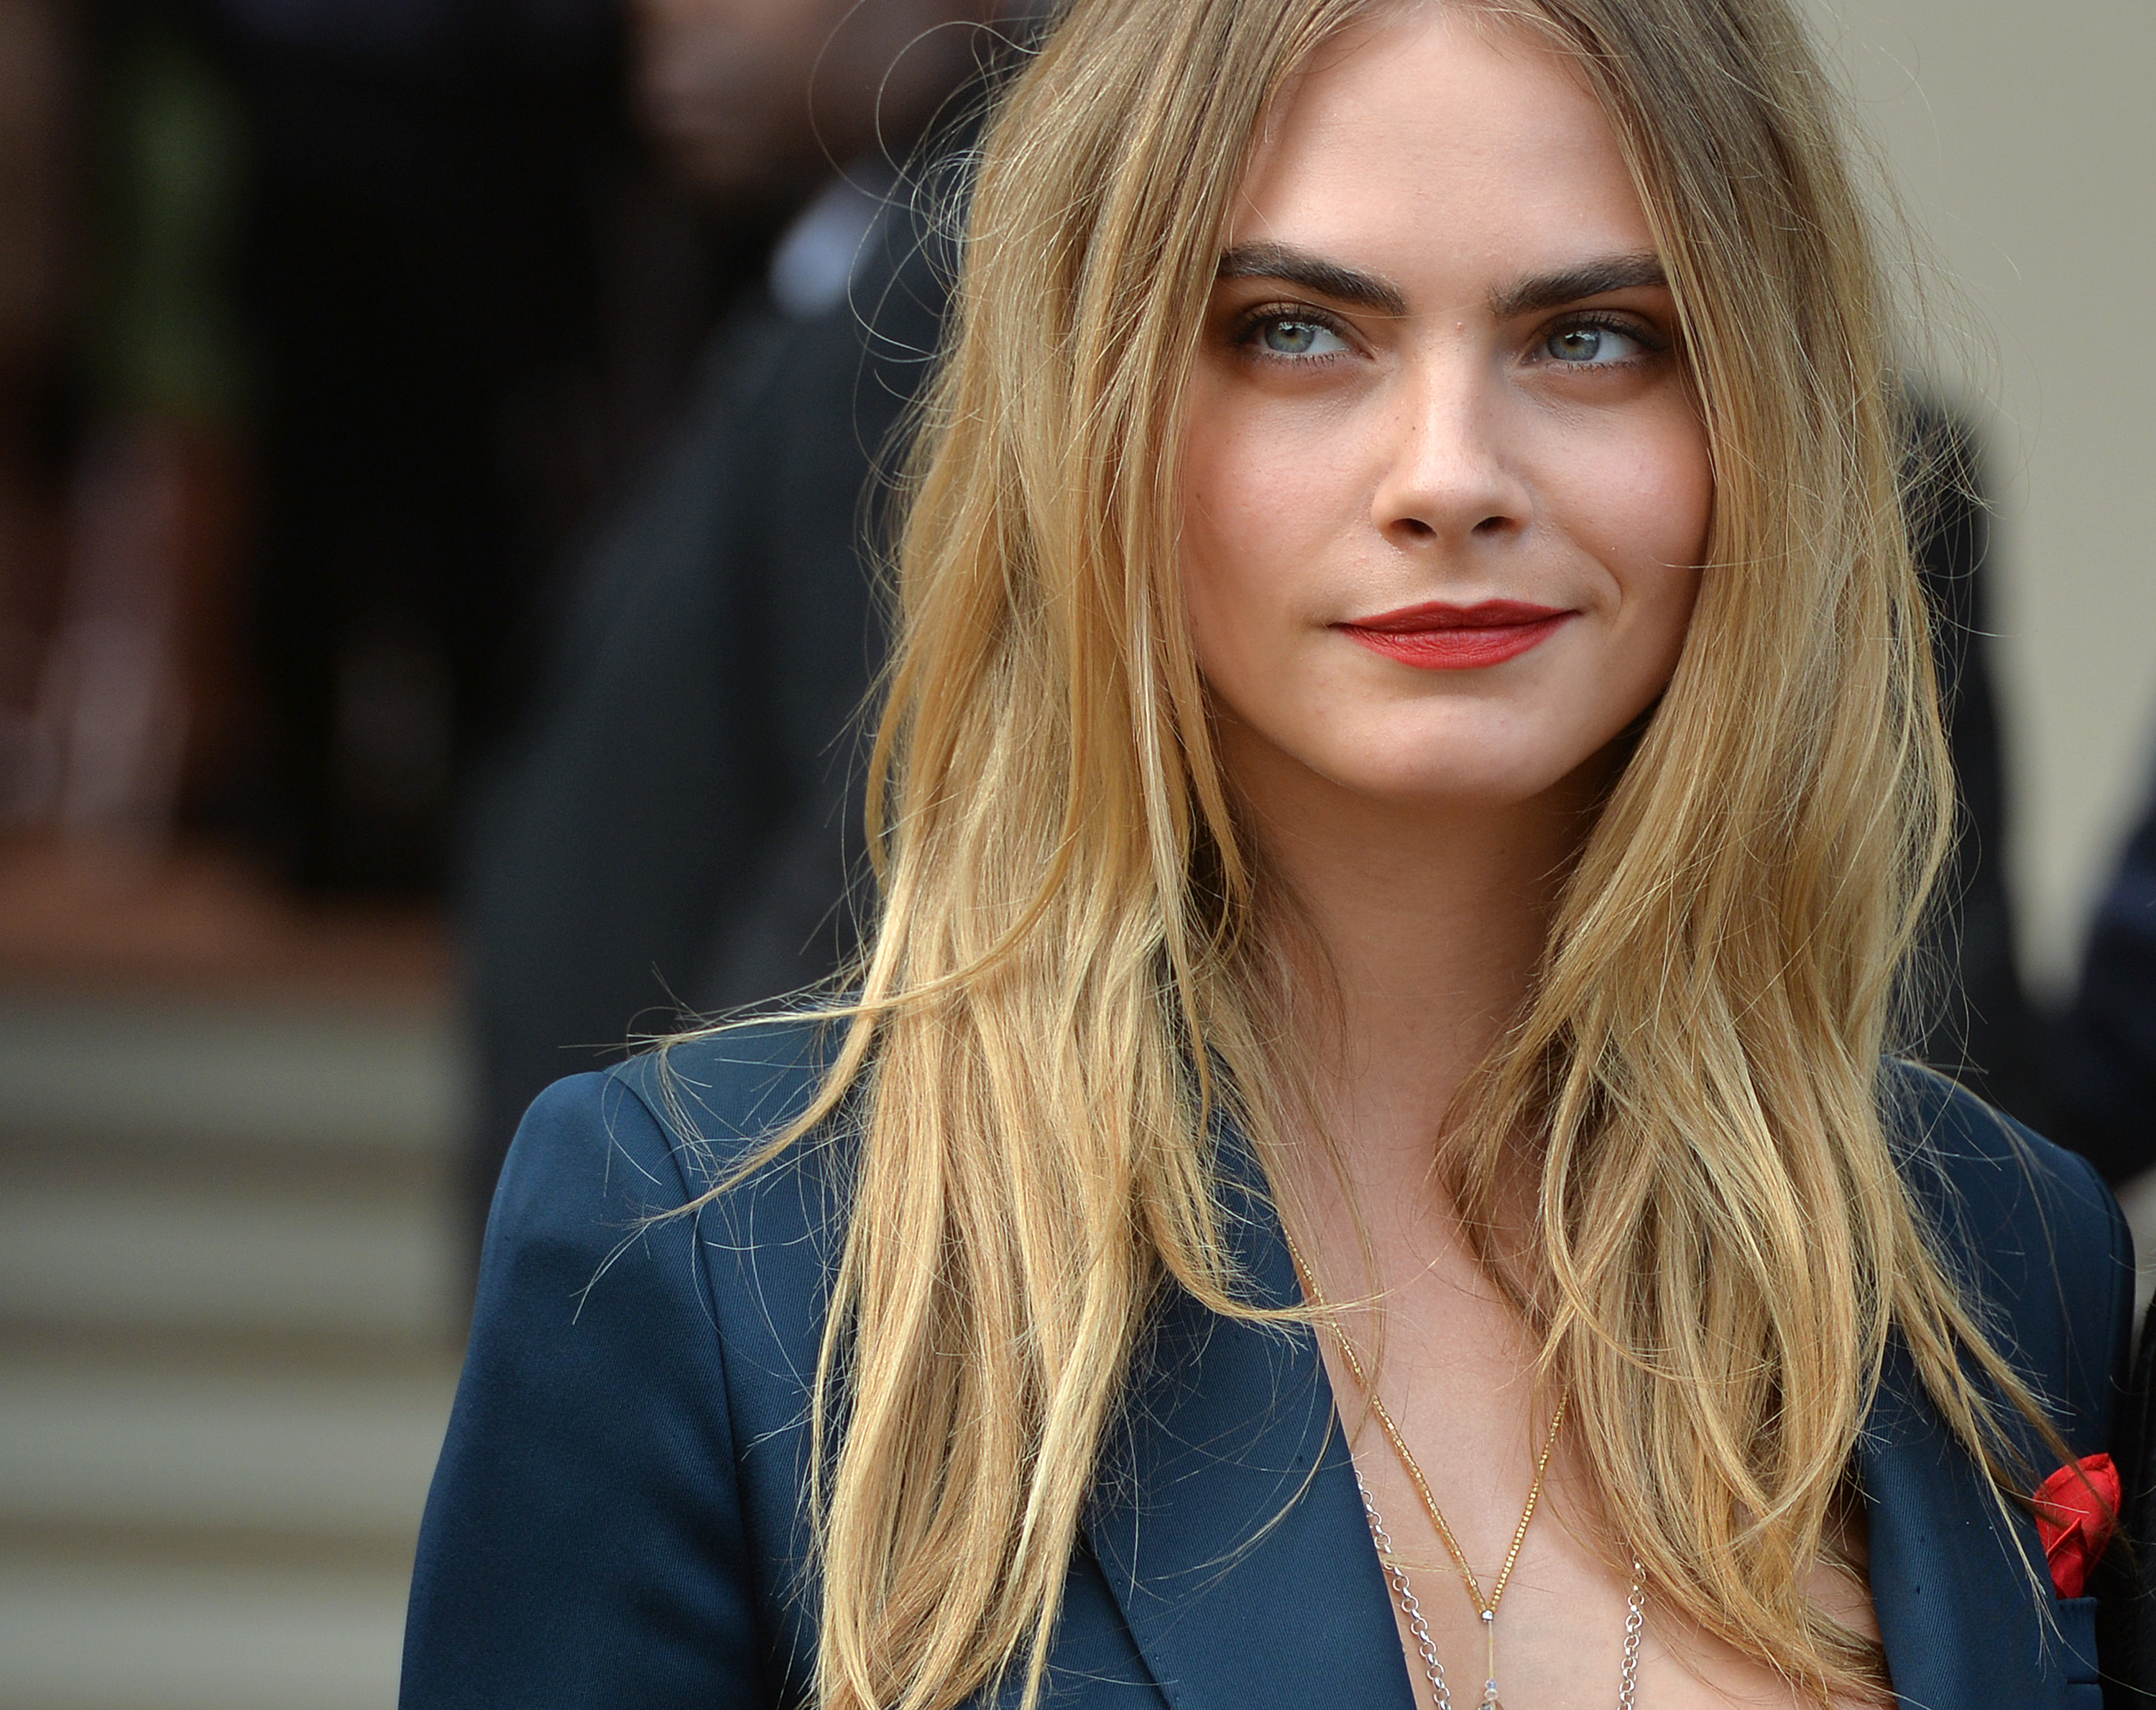 Pics Cara Delevingne nude (89 foto and video), Pussy, Paparazzi, Instagram, butt 2006